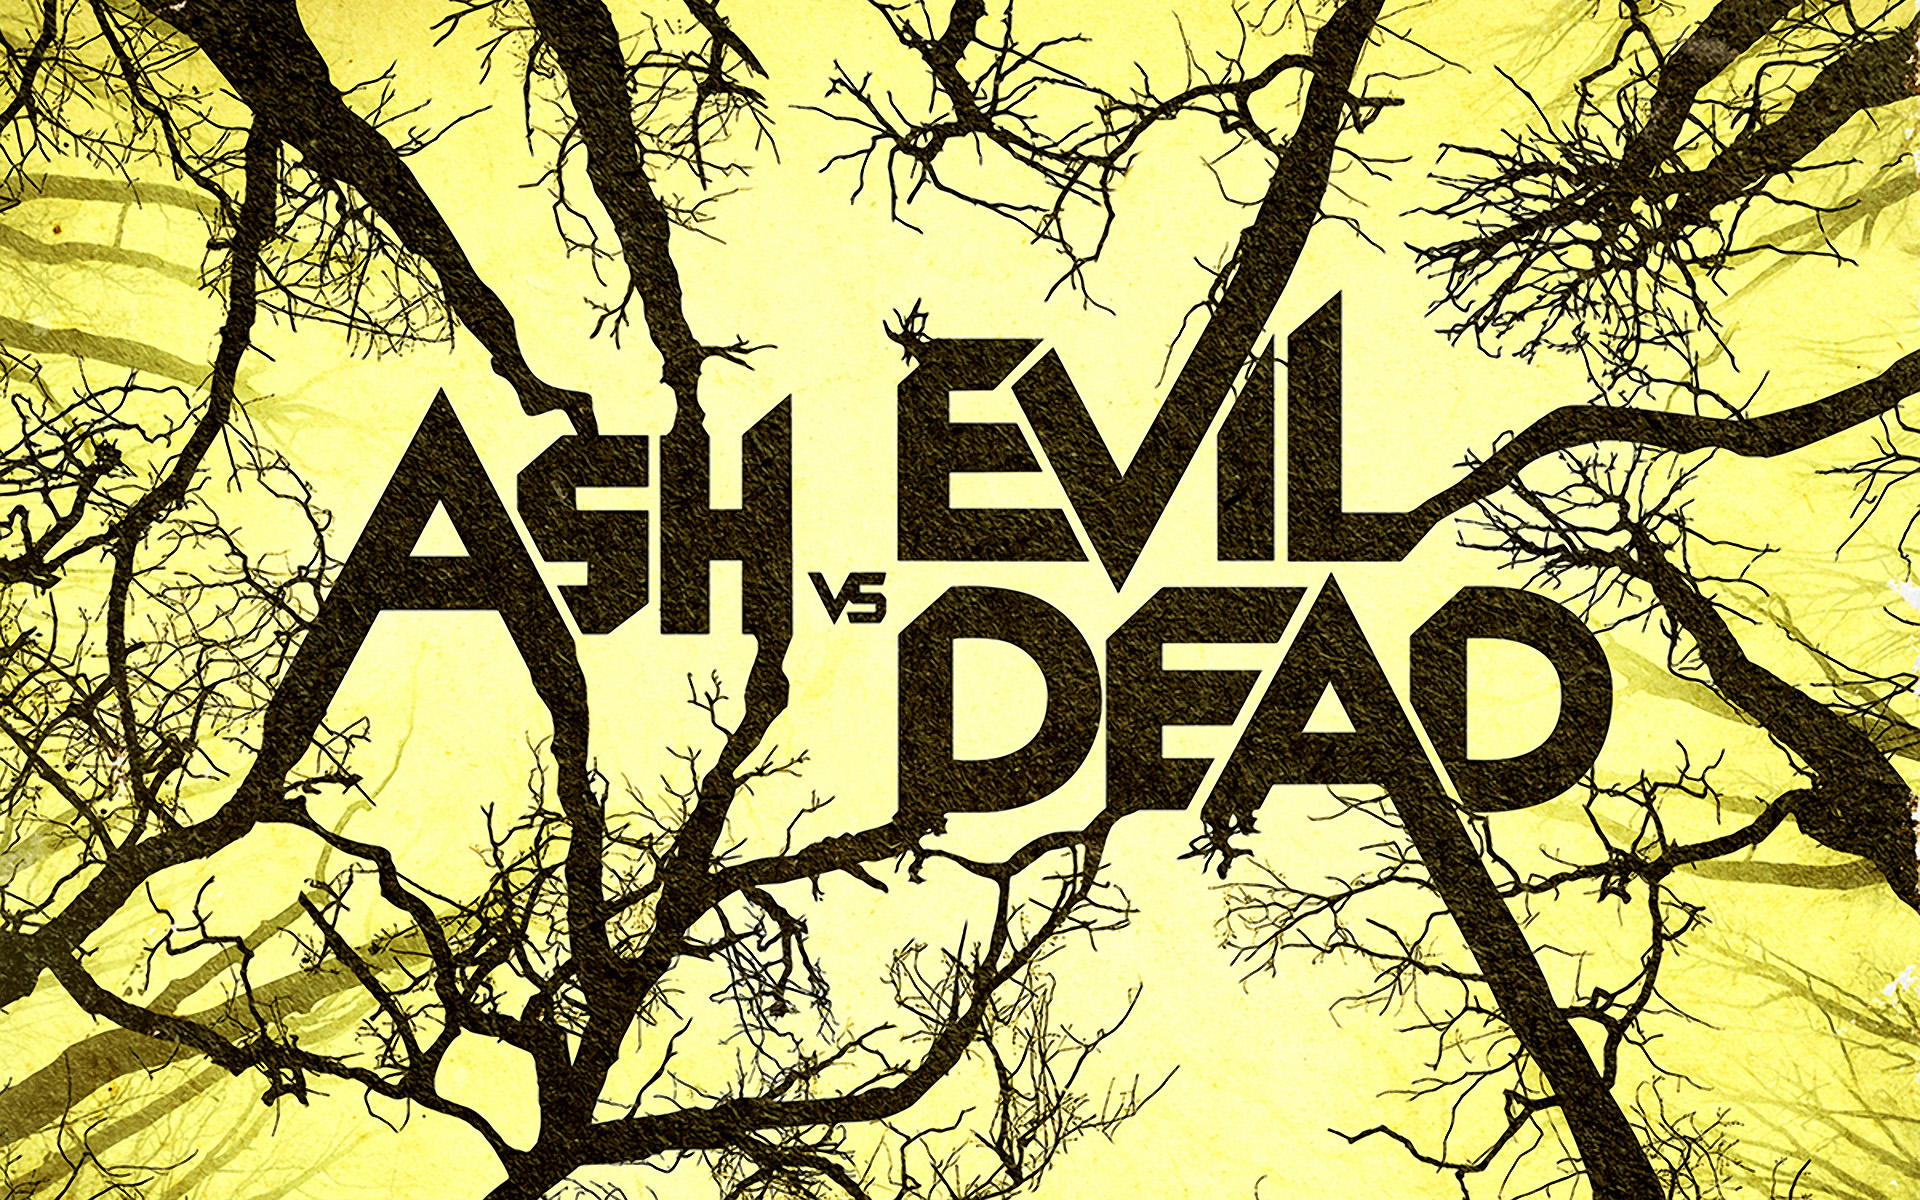 Ash Vs Evil Dead Images HD Wallpaper And Background Photos